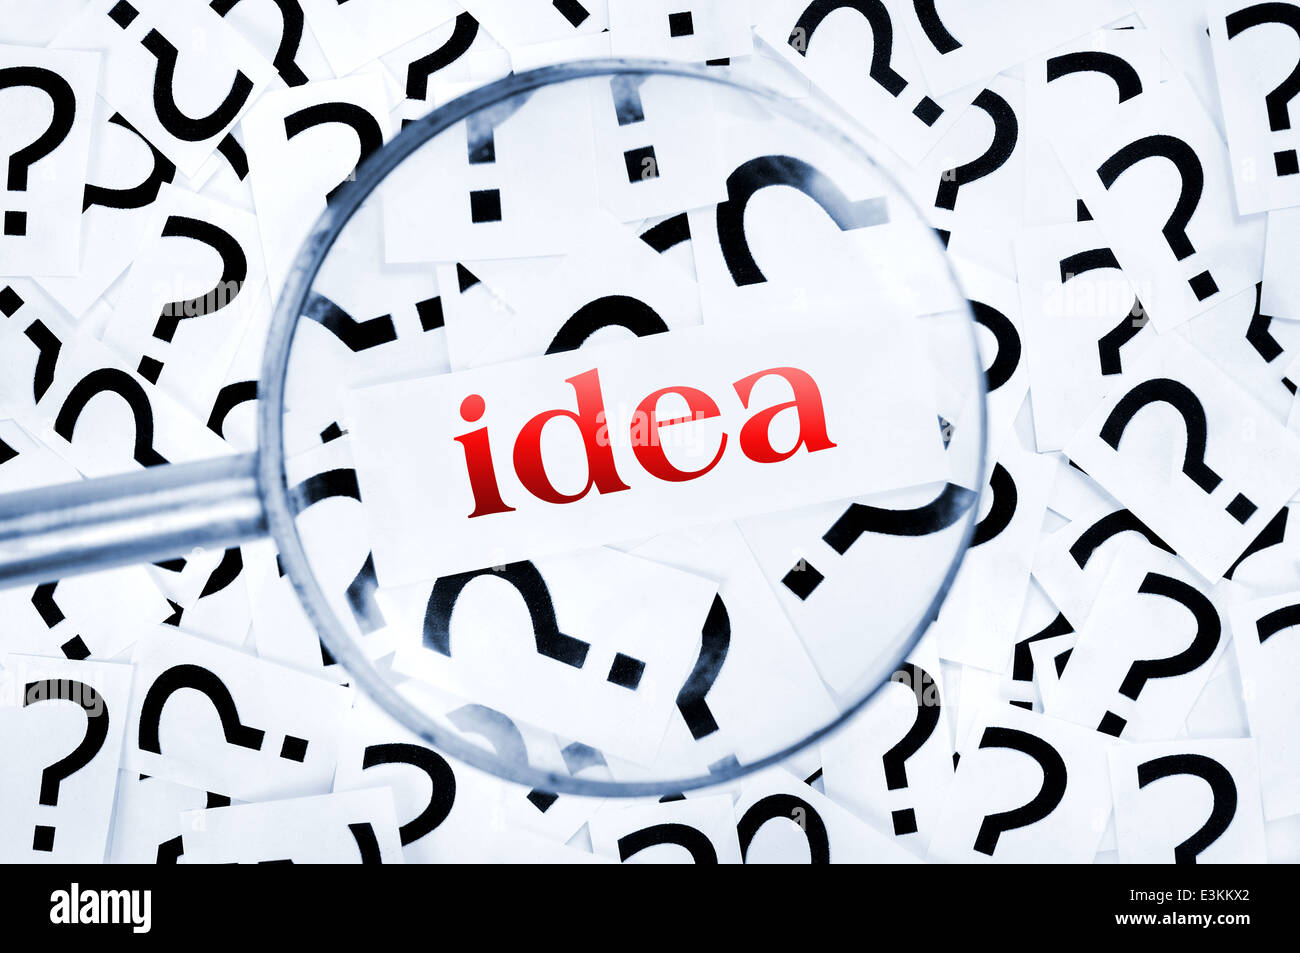 Ideaword found in many question marks - Stock Image